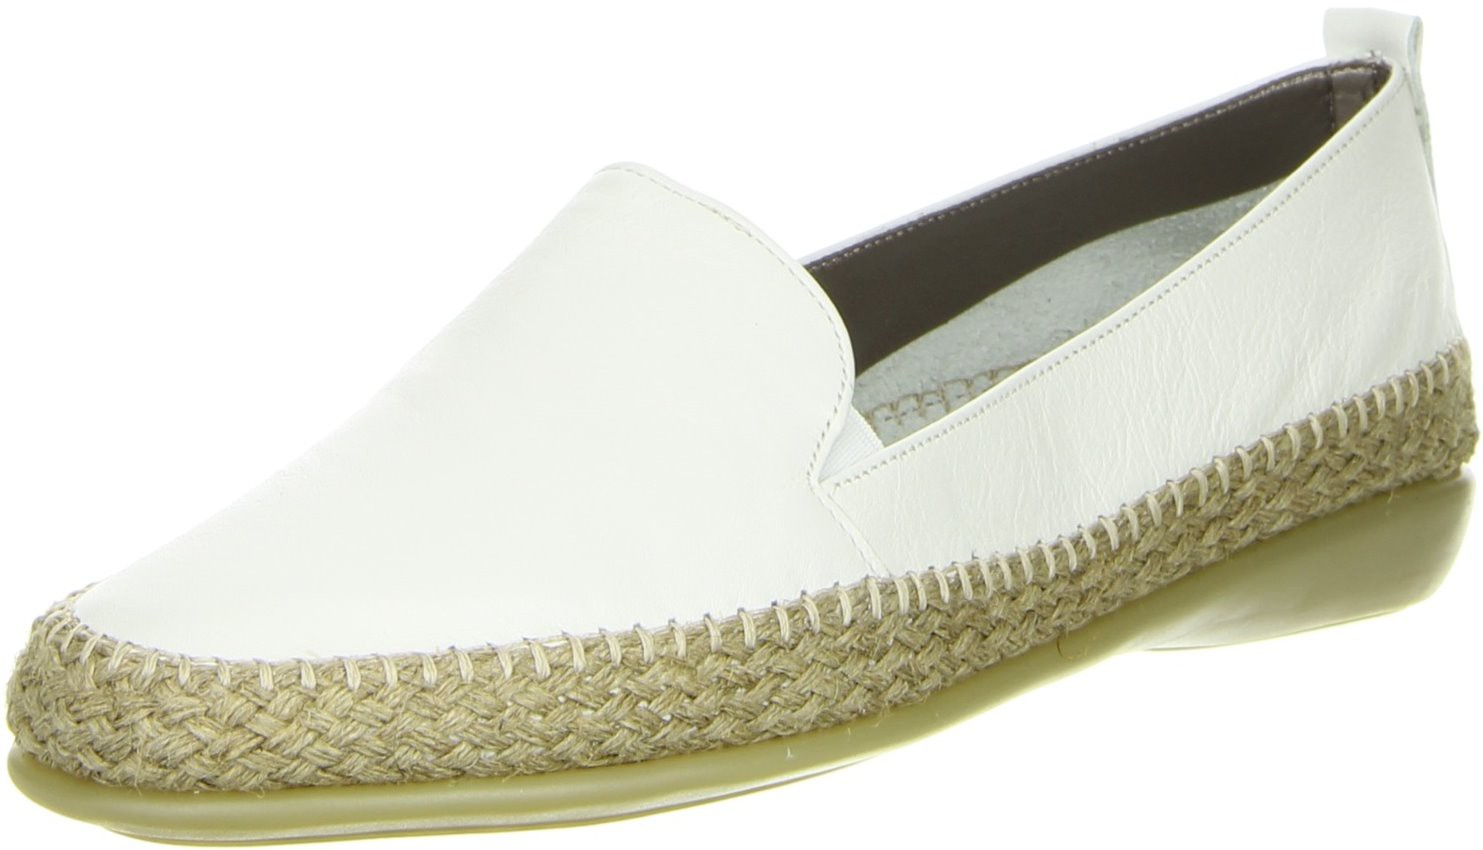 The Flexx Damen Slipper weiß